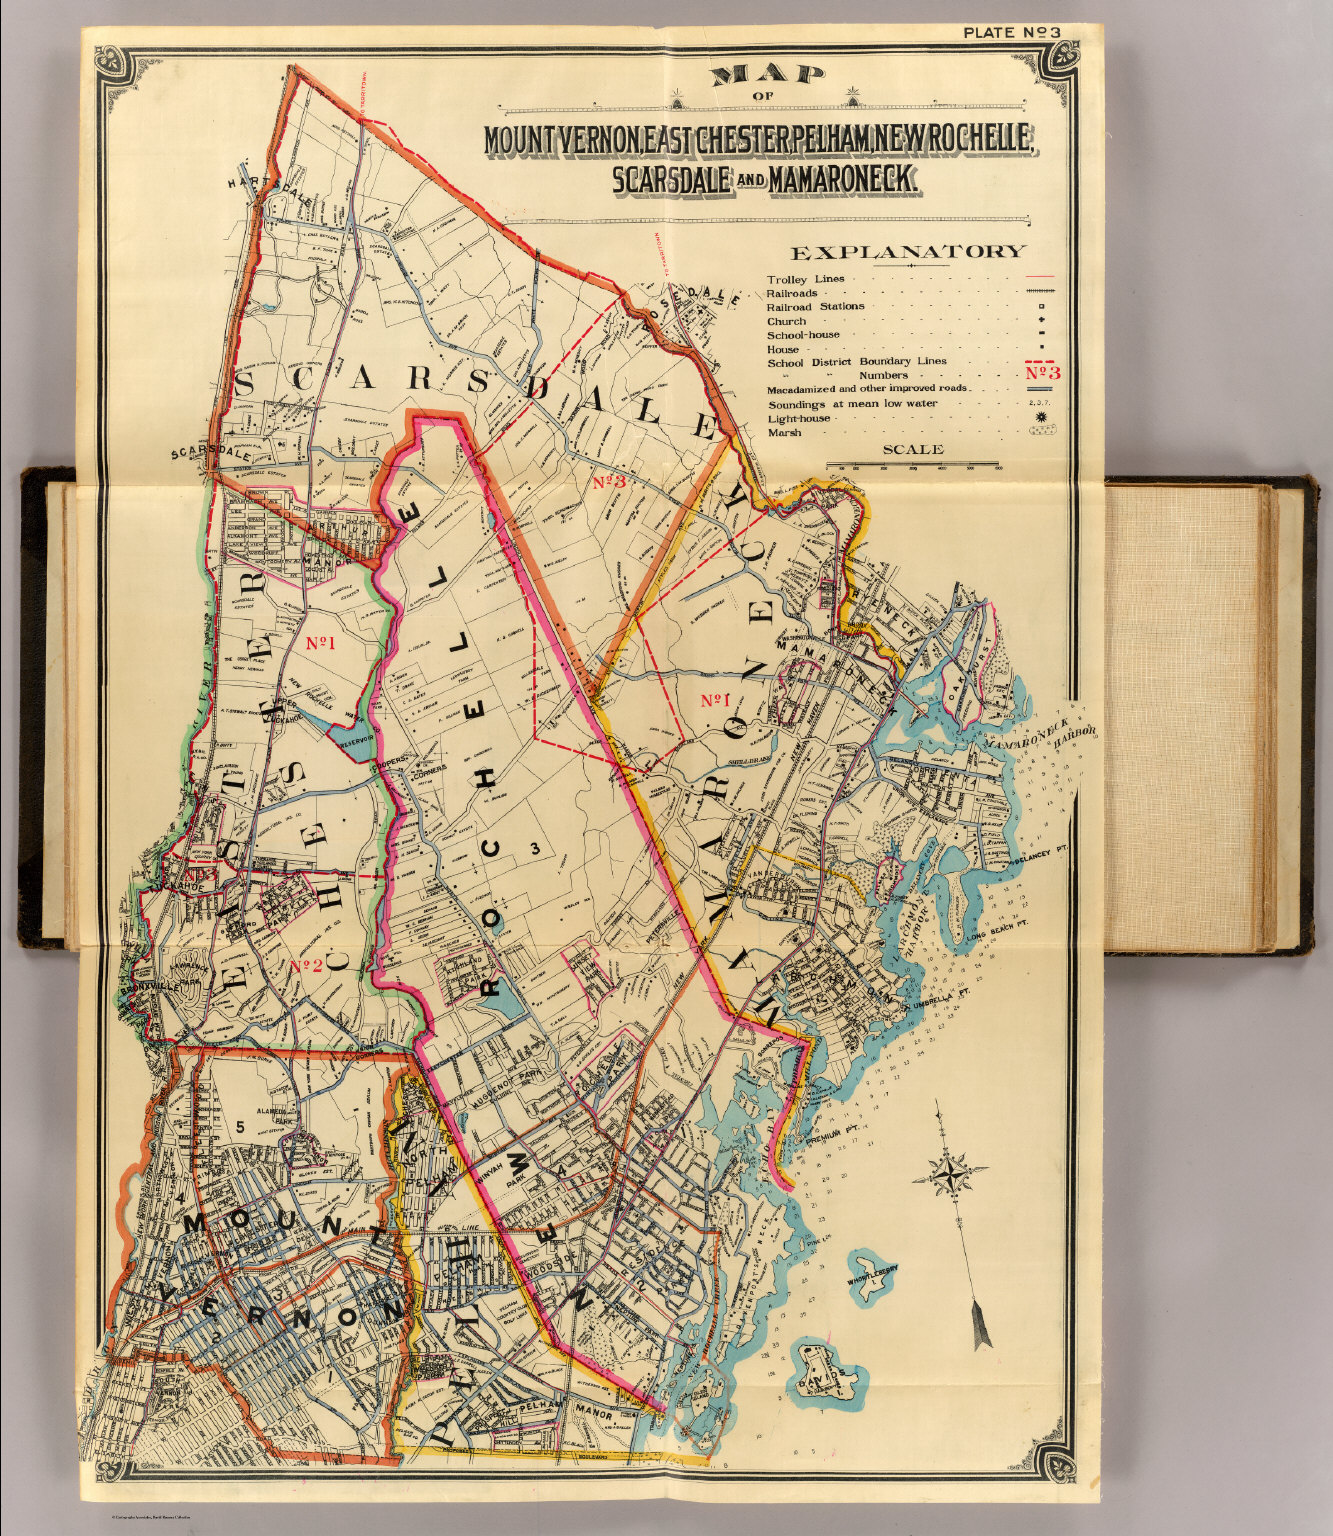 Map of Mount Vernon, East Chester, Pelham, New Rochelle, Scarsdale and Mamaroneck, 1900.